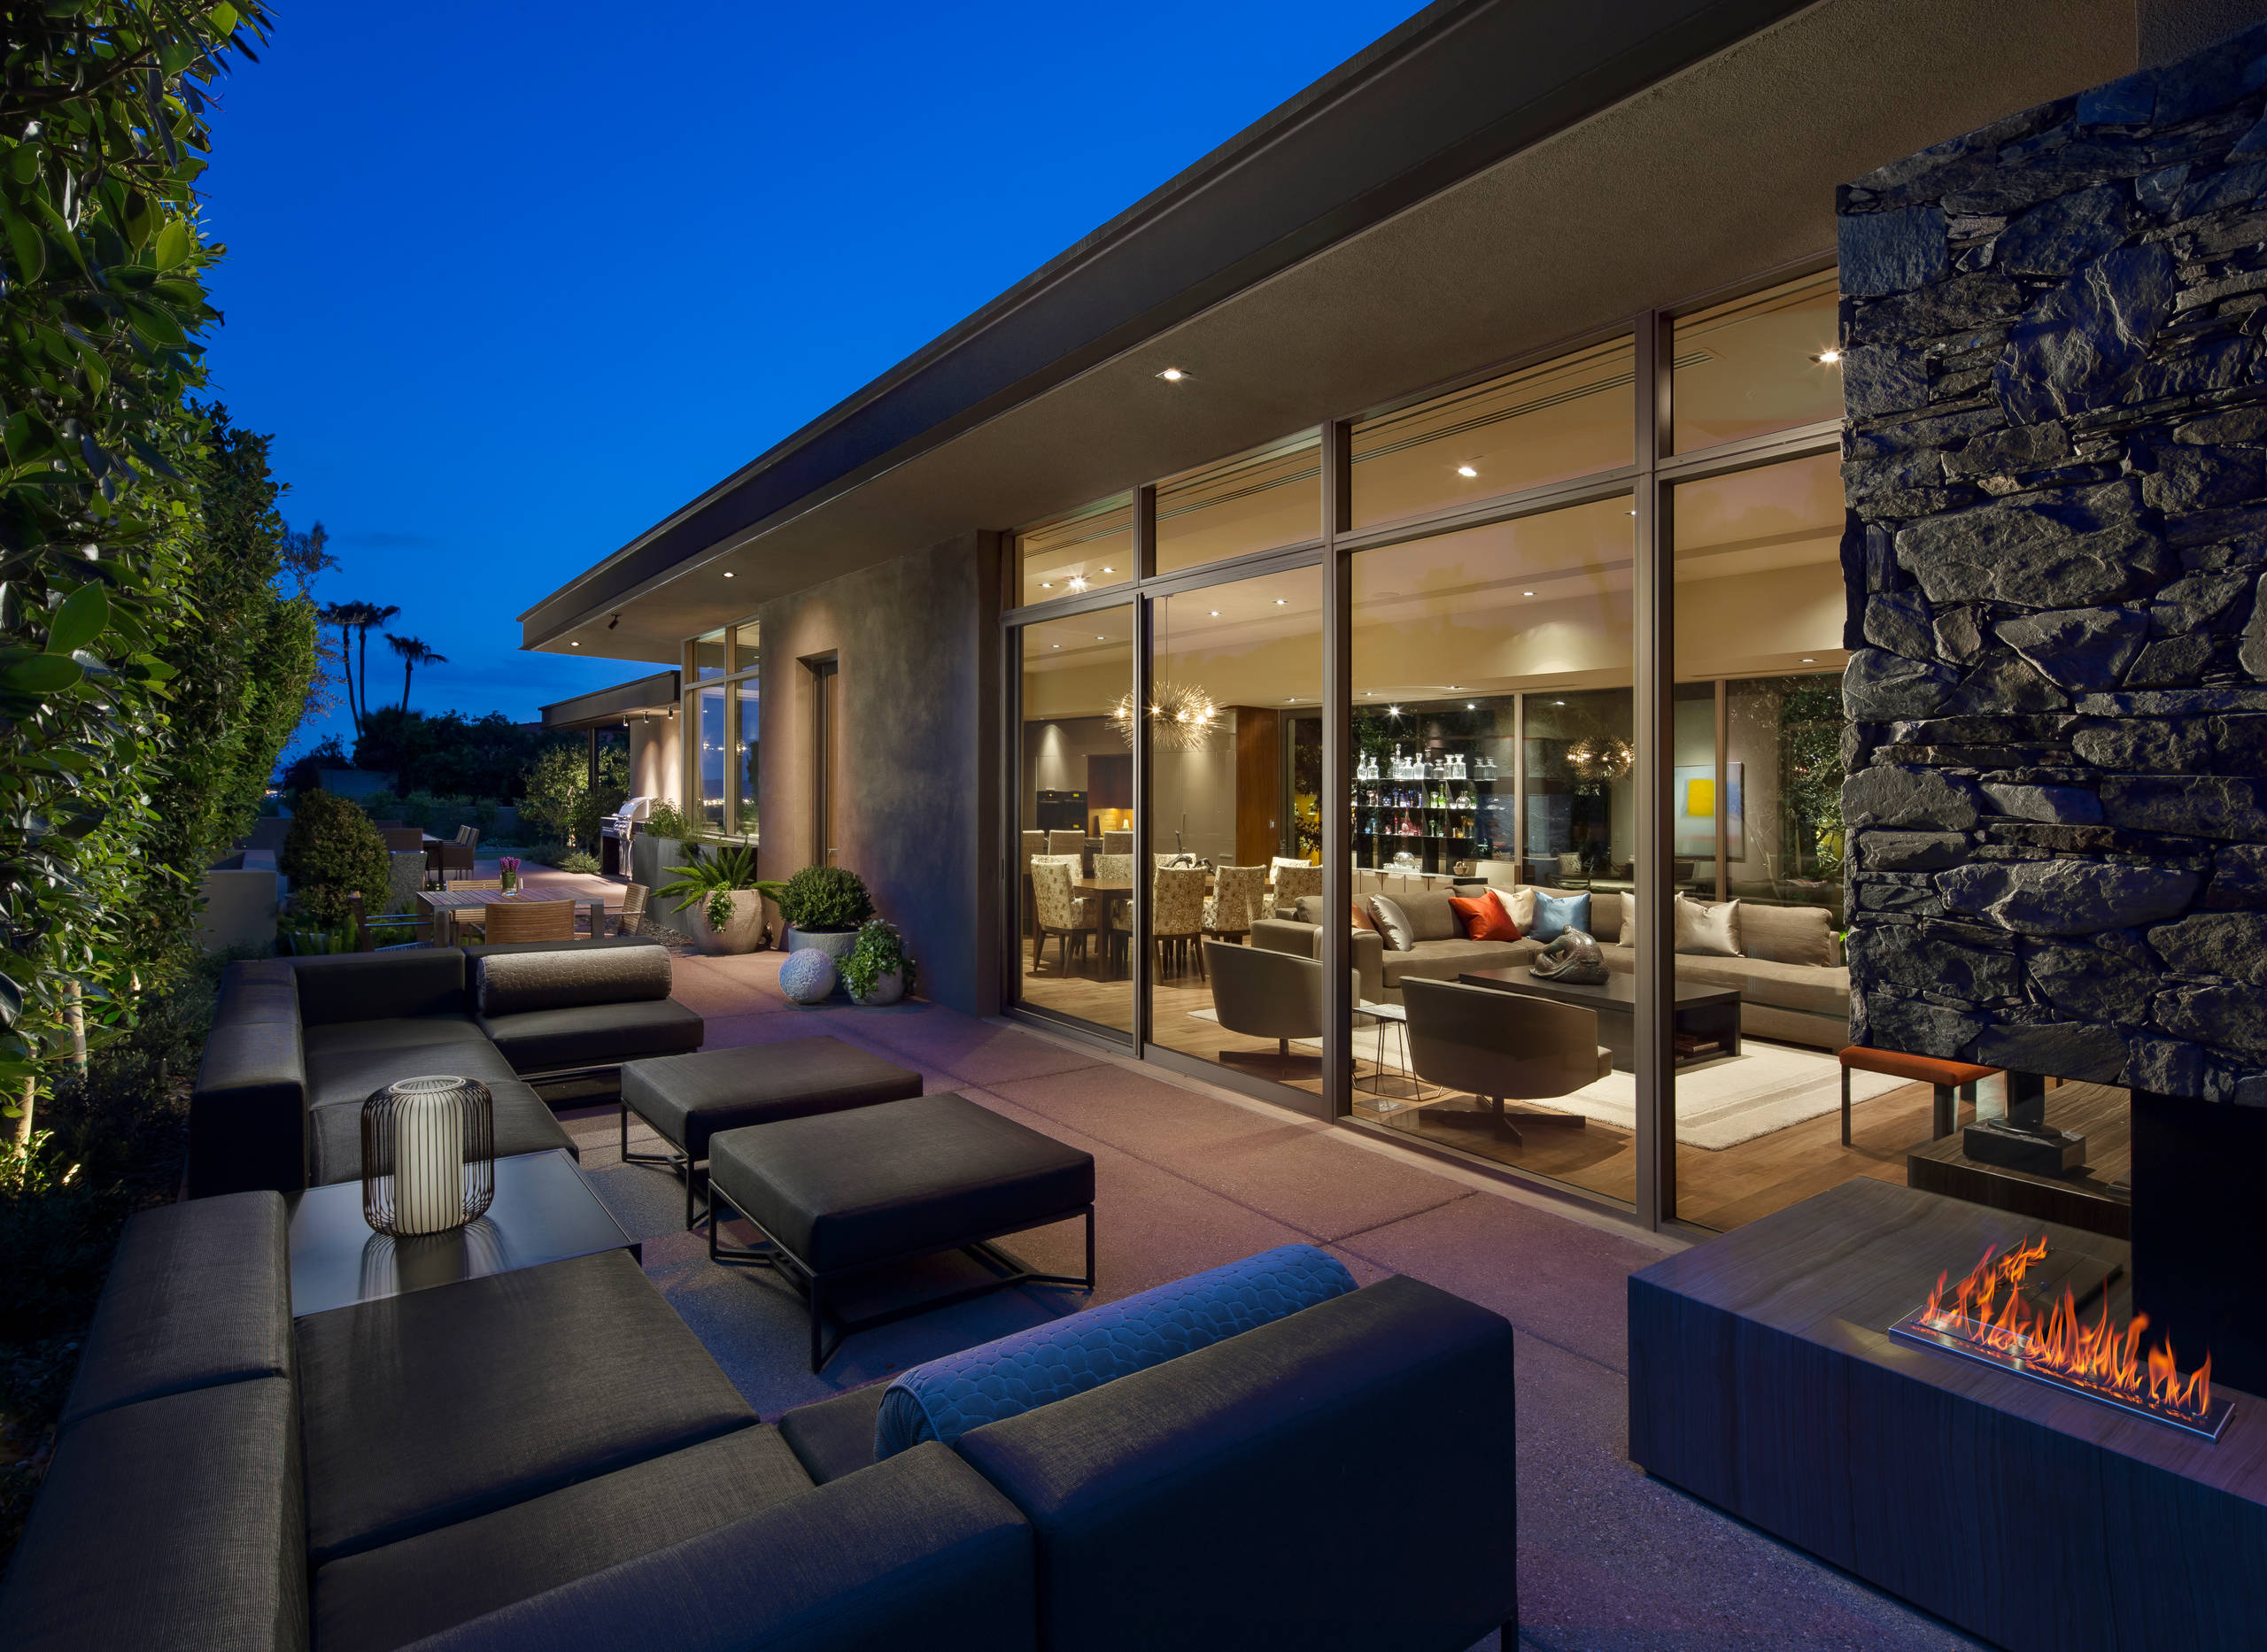 18 Spectacular Modern Patio Designs To Enjoy The Outdoors on Modern Small Patio Ideas id=74363